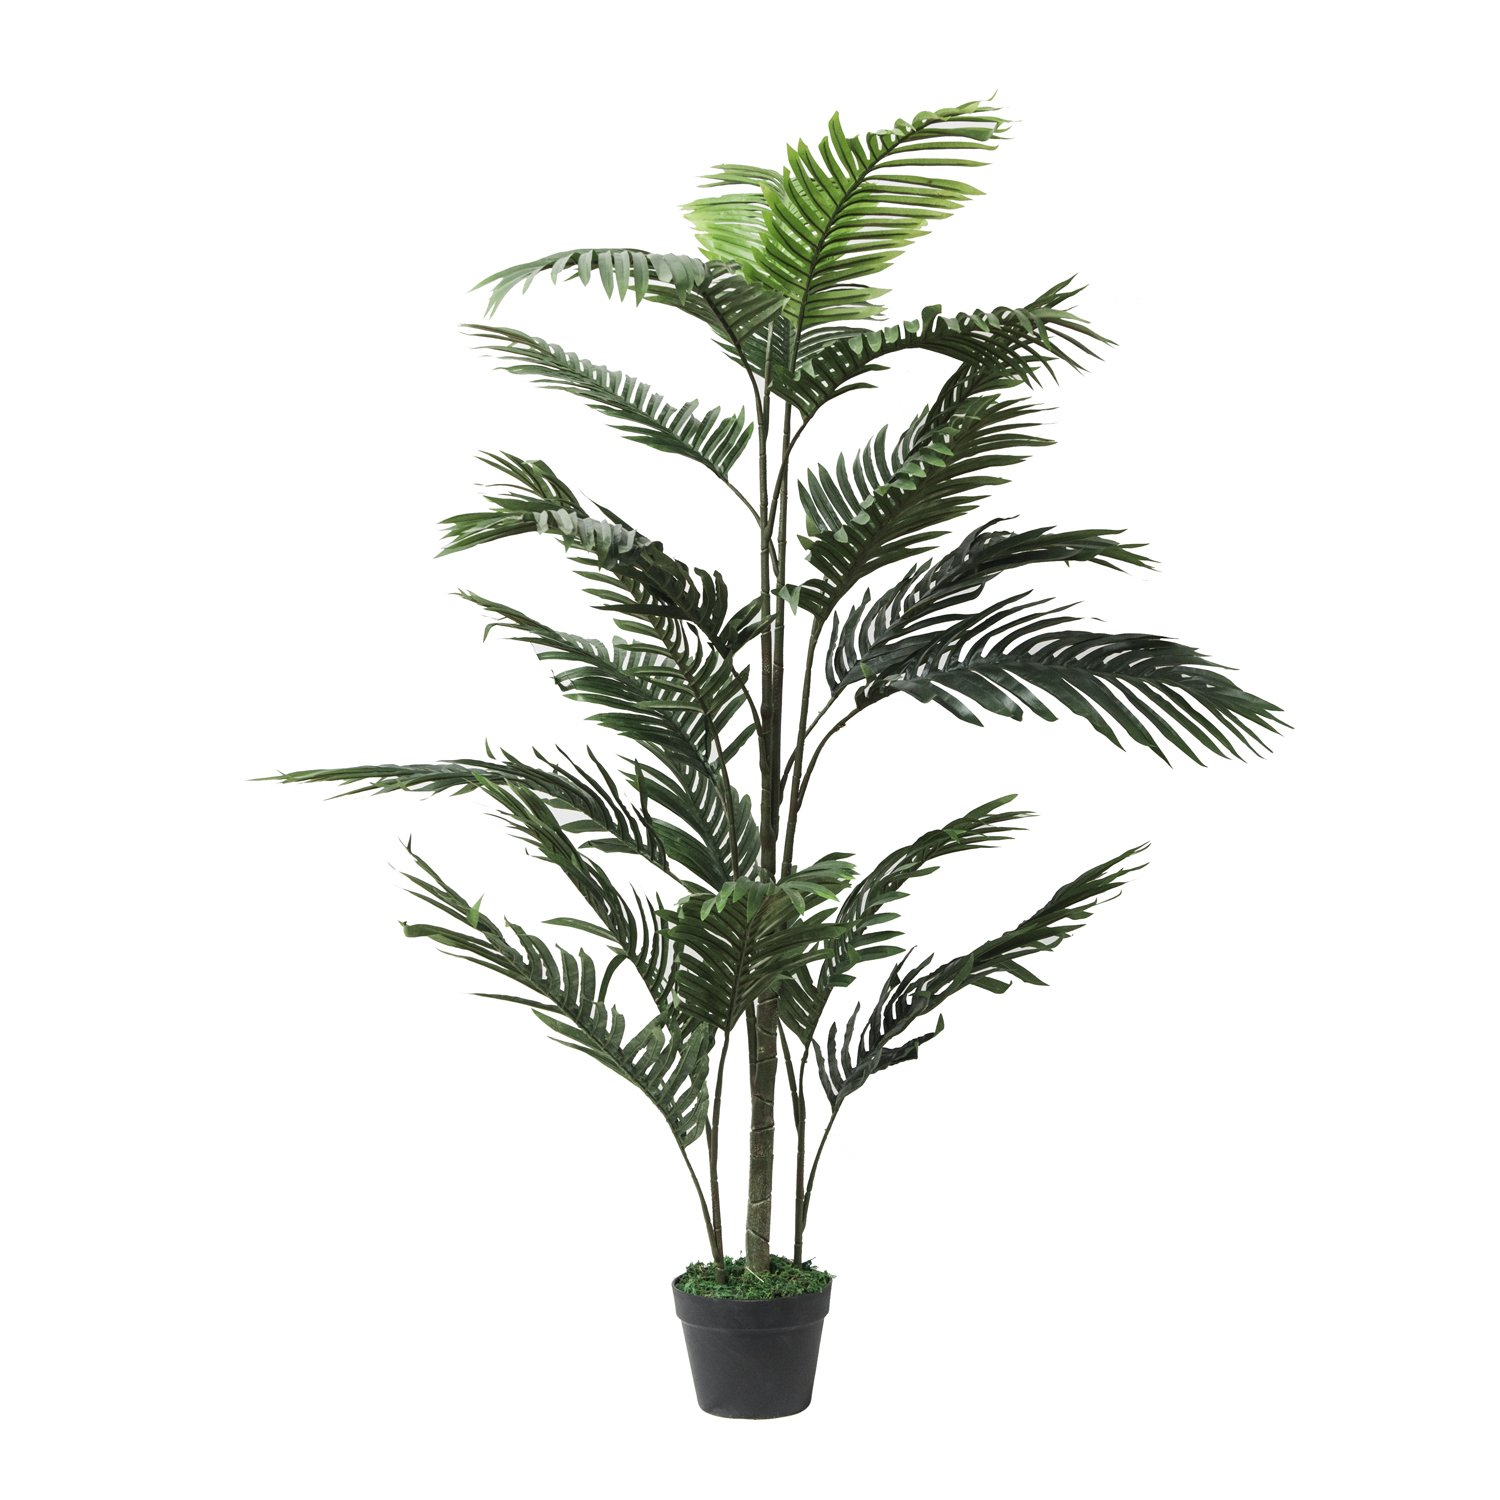 RUOPEI 4.5ft ,Set of 2 Artificial Palm Tree in Plastic Pot, Potted Fake Greenery Decoration with Bendable Branches for Home, Restaurant, Cafe or Office Decorating